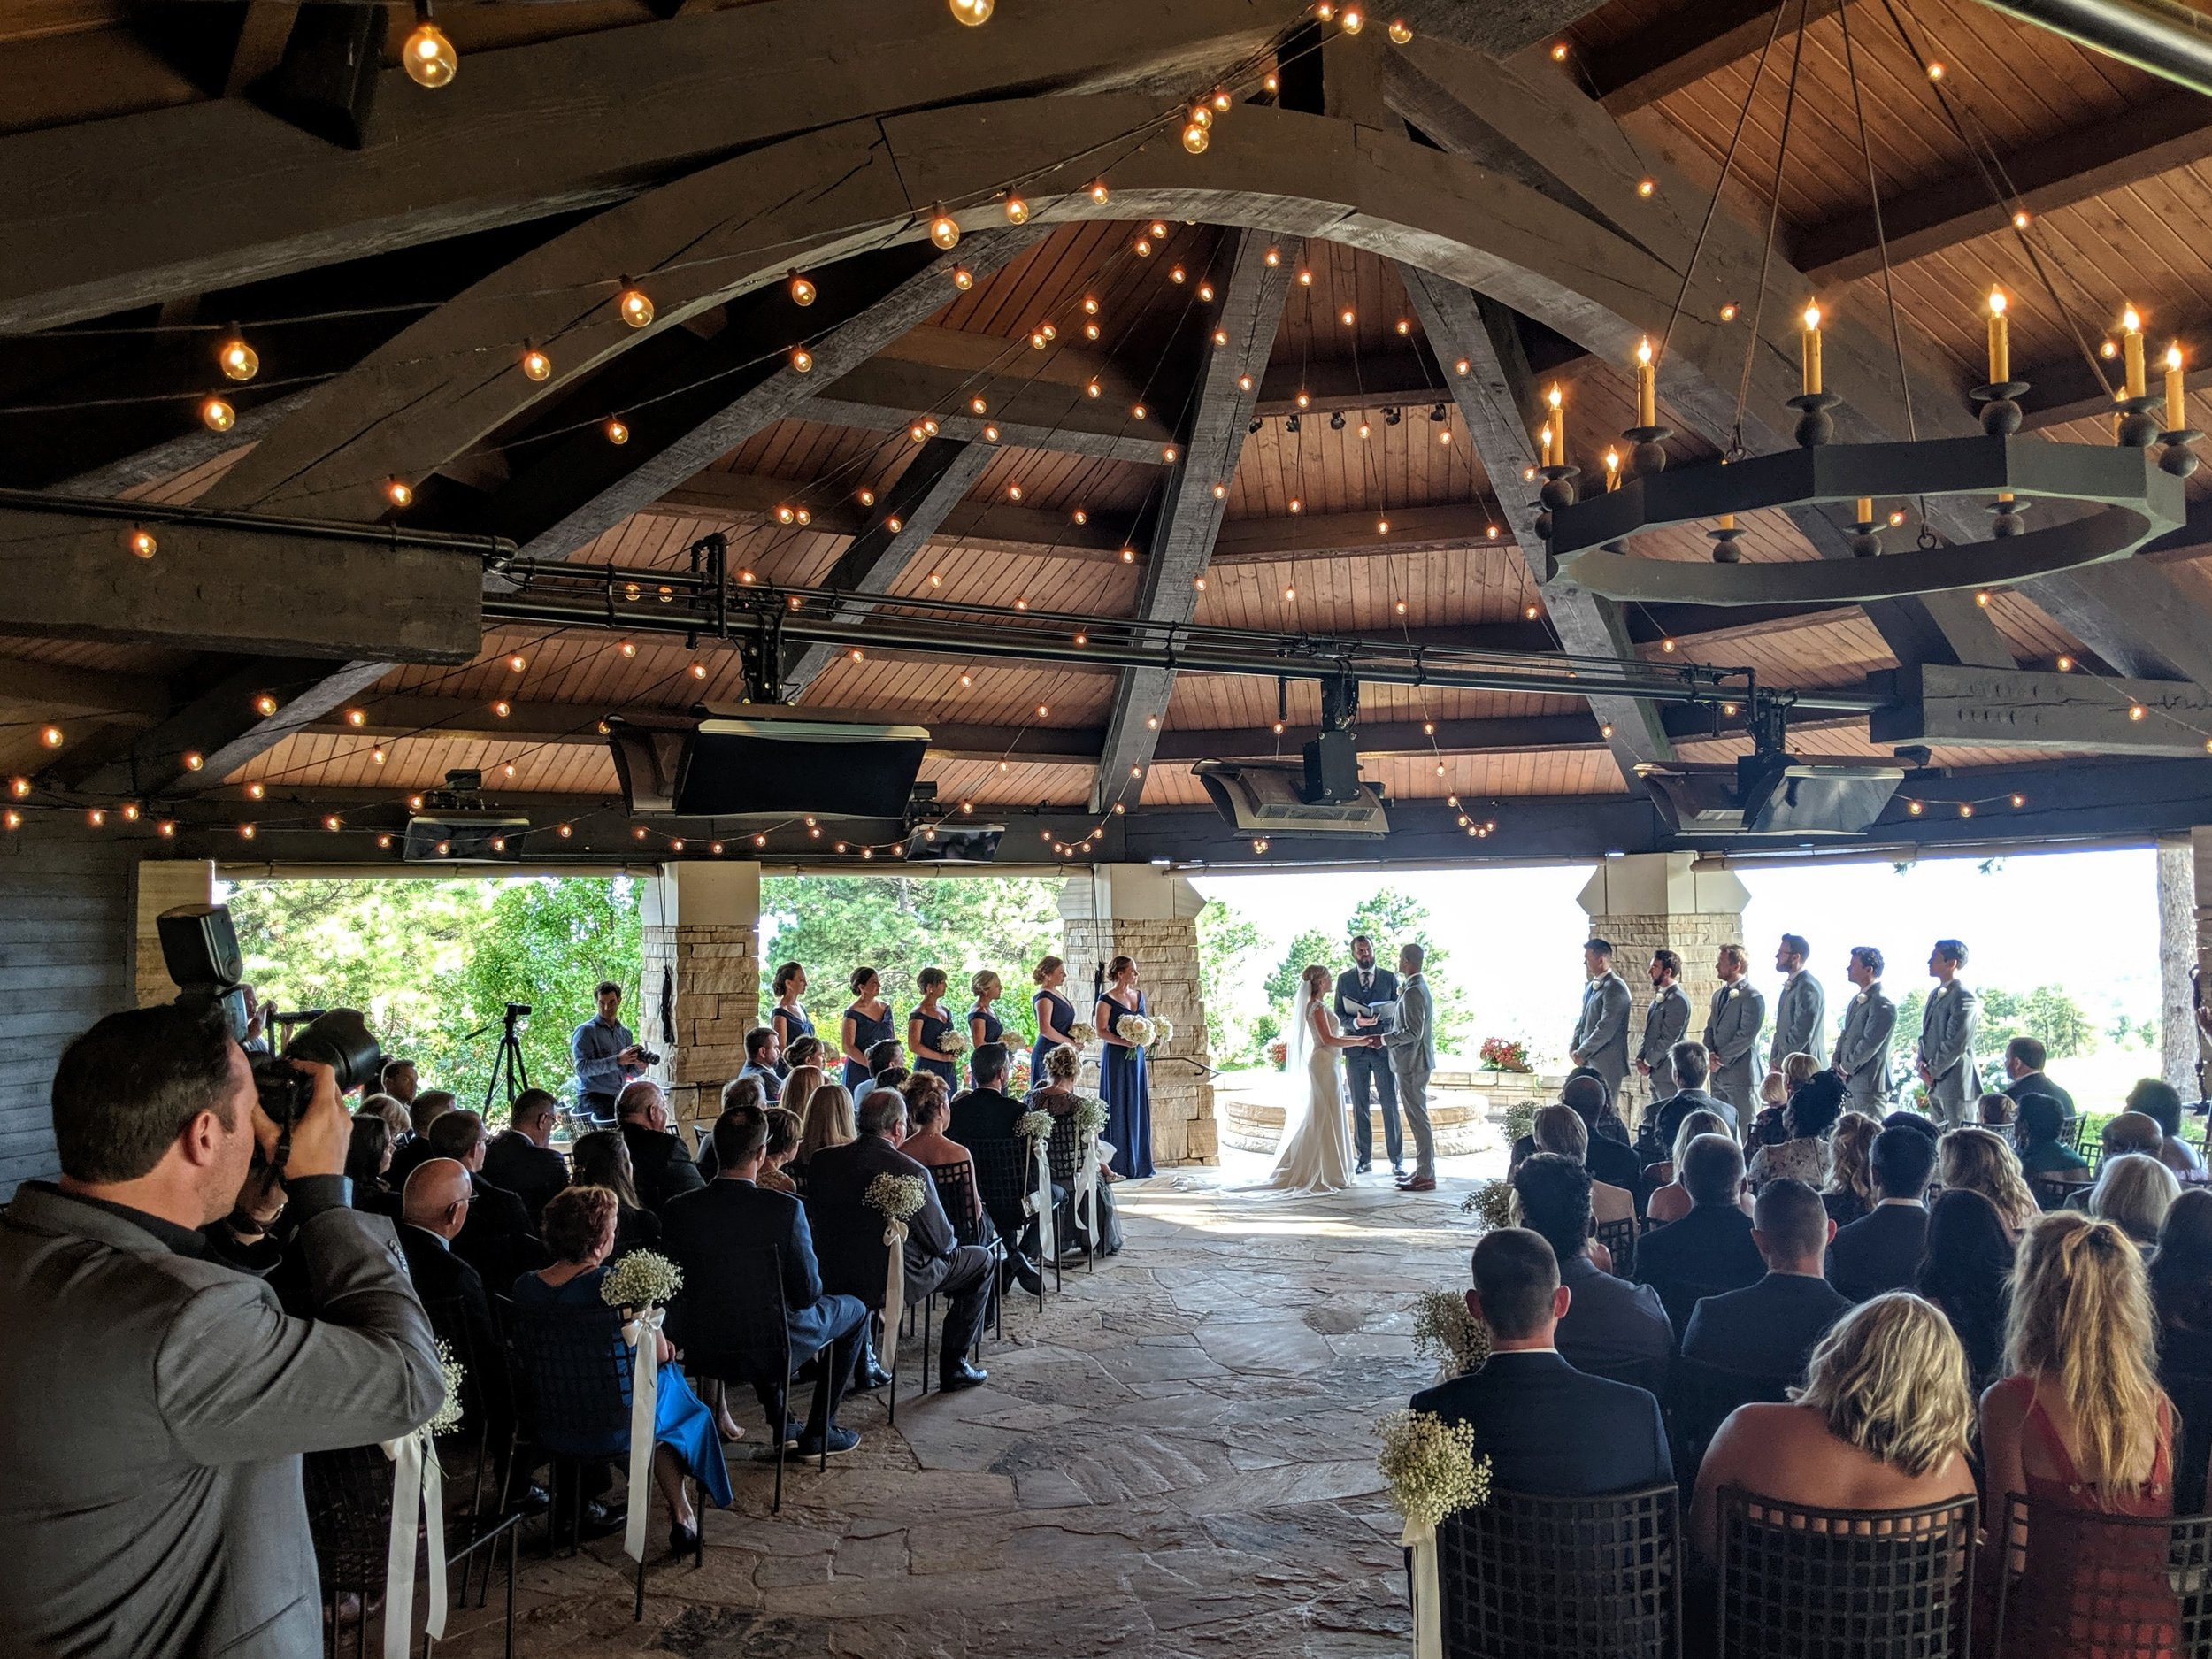 Flute and Strings by Christen Stephens, Classical and Contemporary String Trio Wedding Ceremony Music at the Sanctuary Golf Course in Sedalia, Colorado